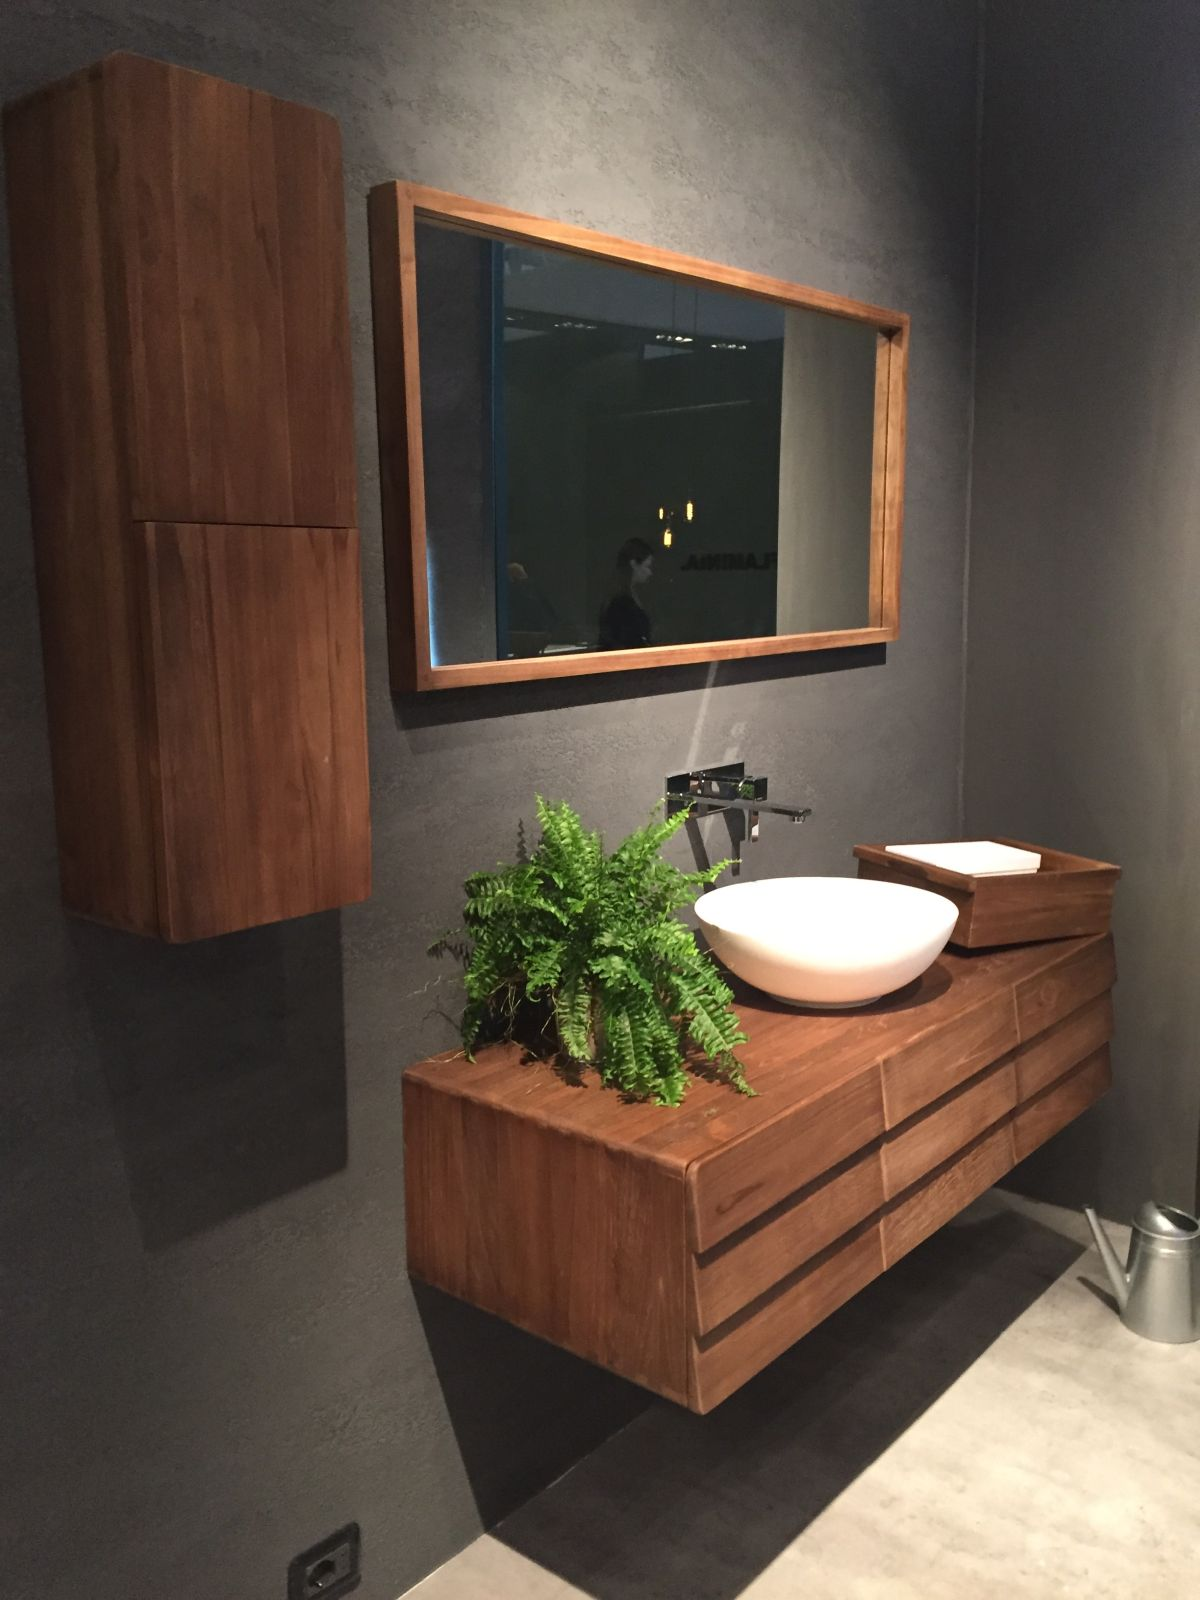 stylish ways to decorate with modern bathroom vanities - Midcentury Bathroom 2016